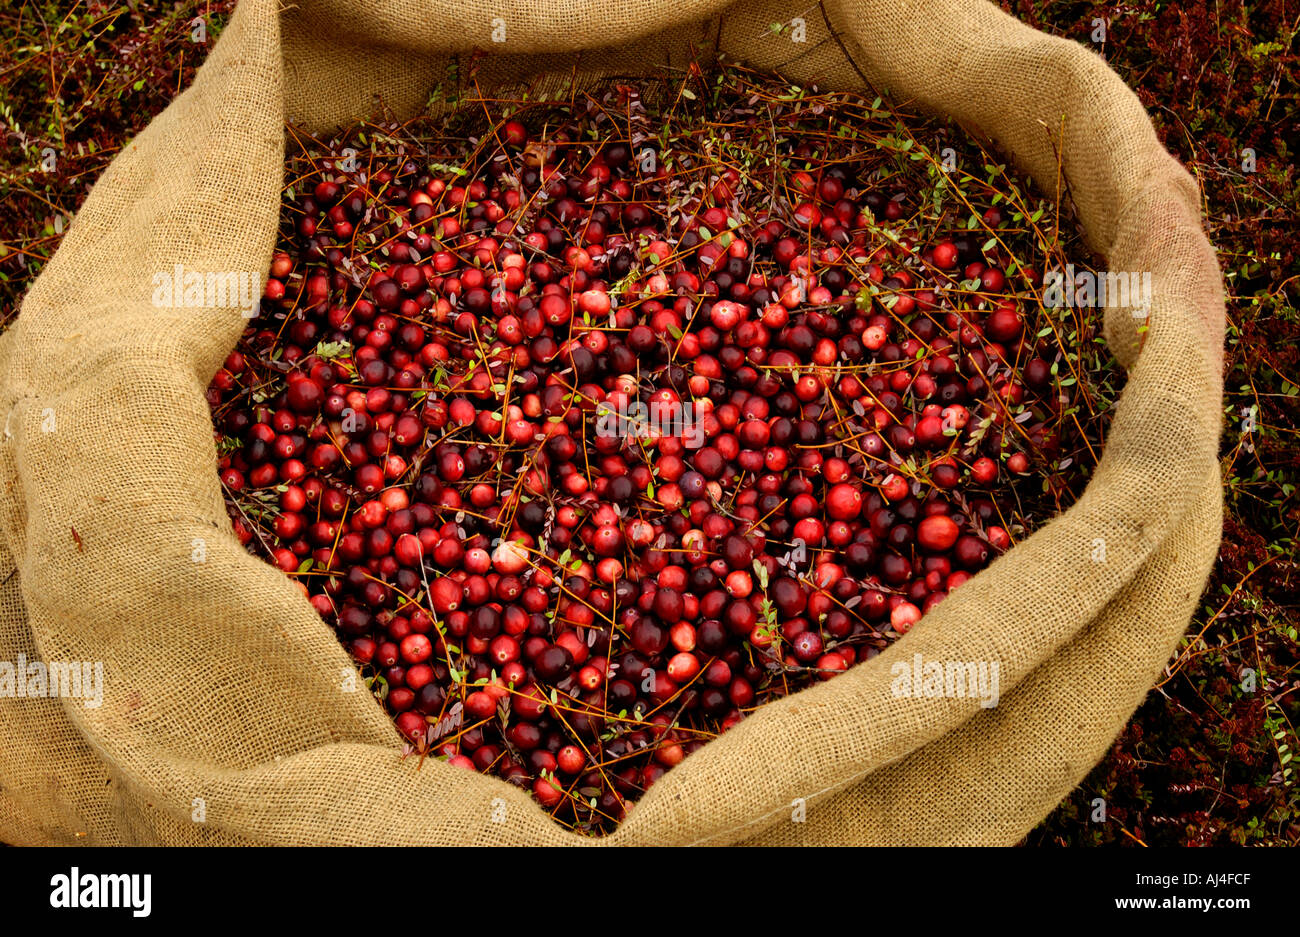 Sack of dry harvested cranberries - Stock Image